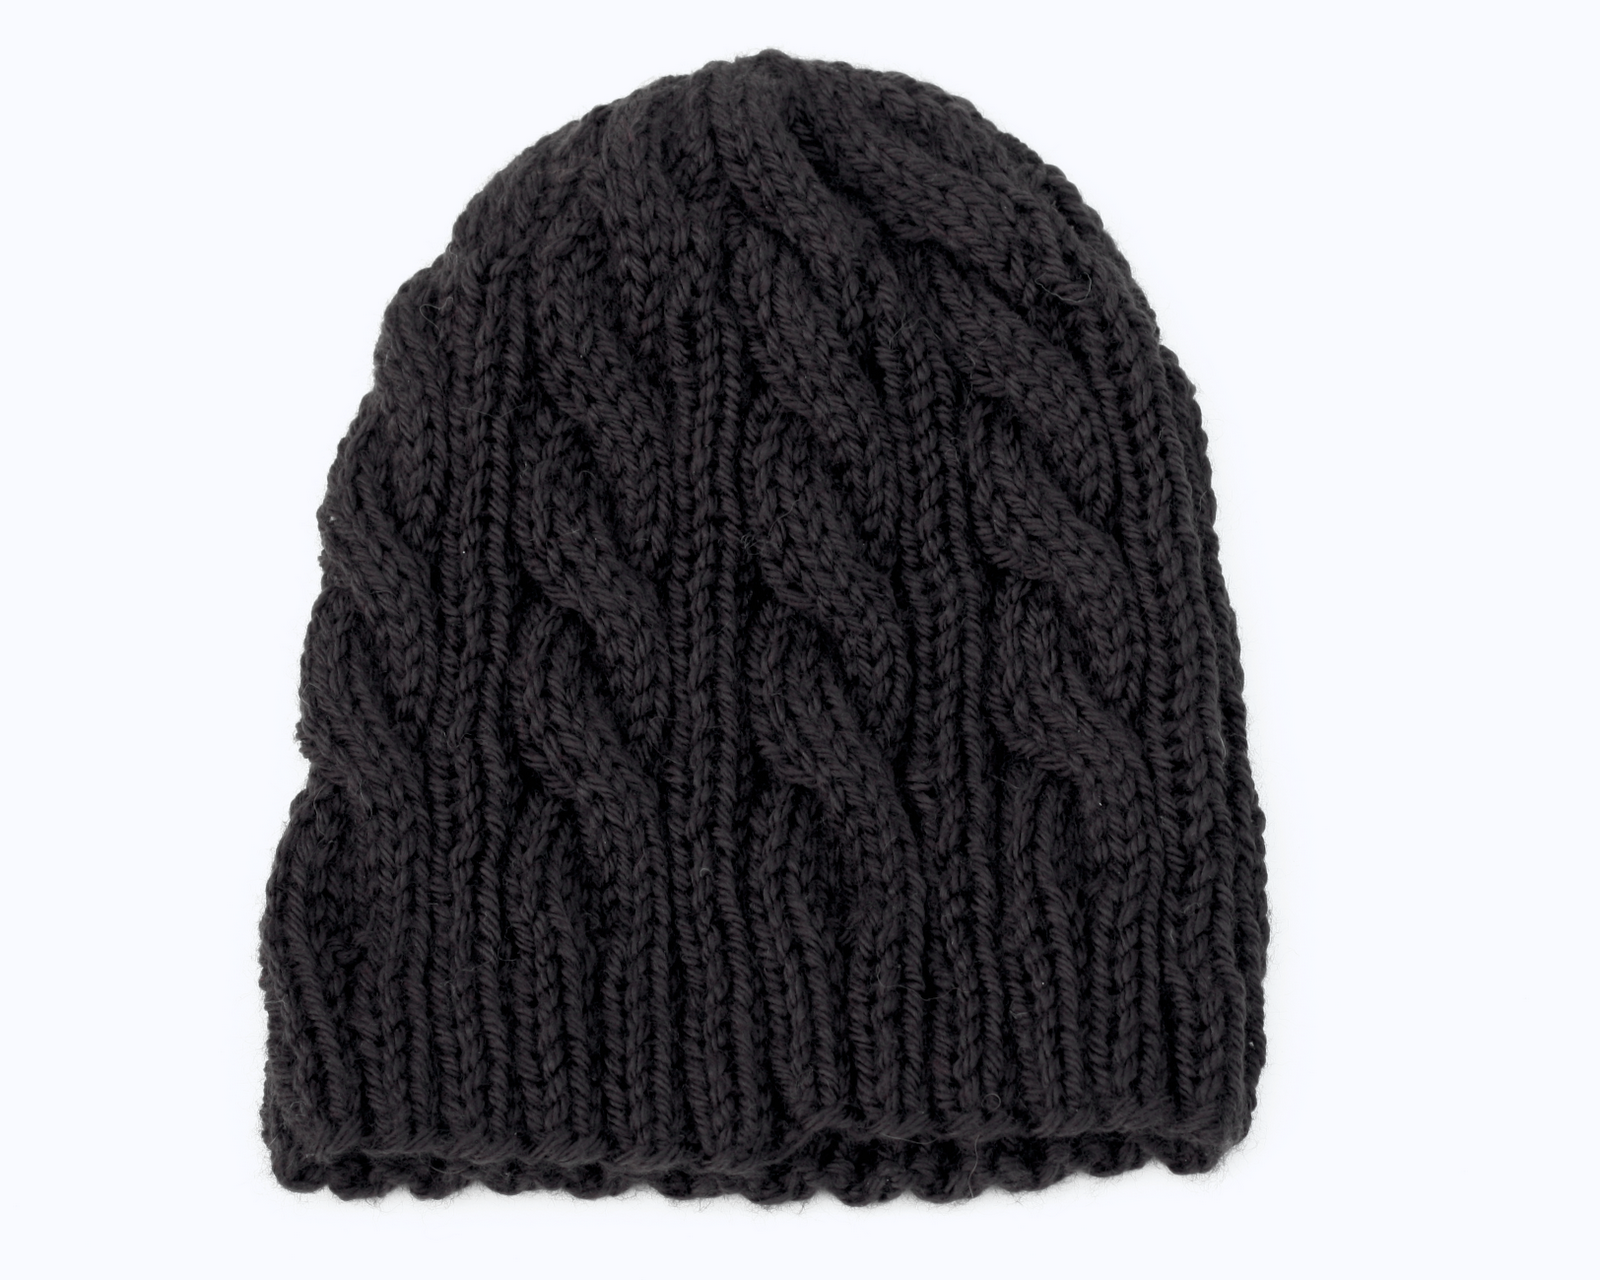 Knitting Pattern For Beanie : Living the Creative Life: Classic Knit Beanies